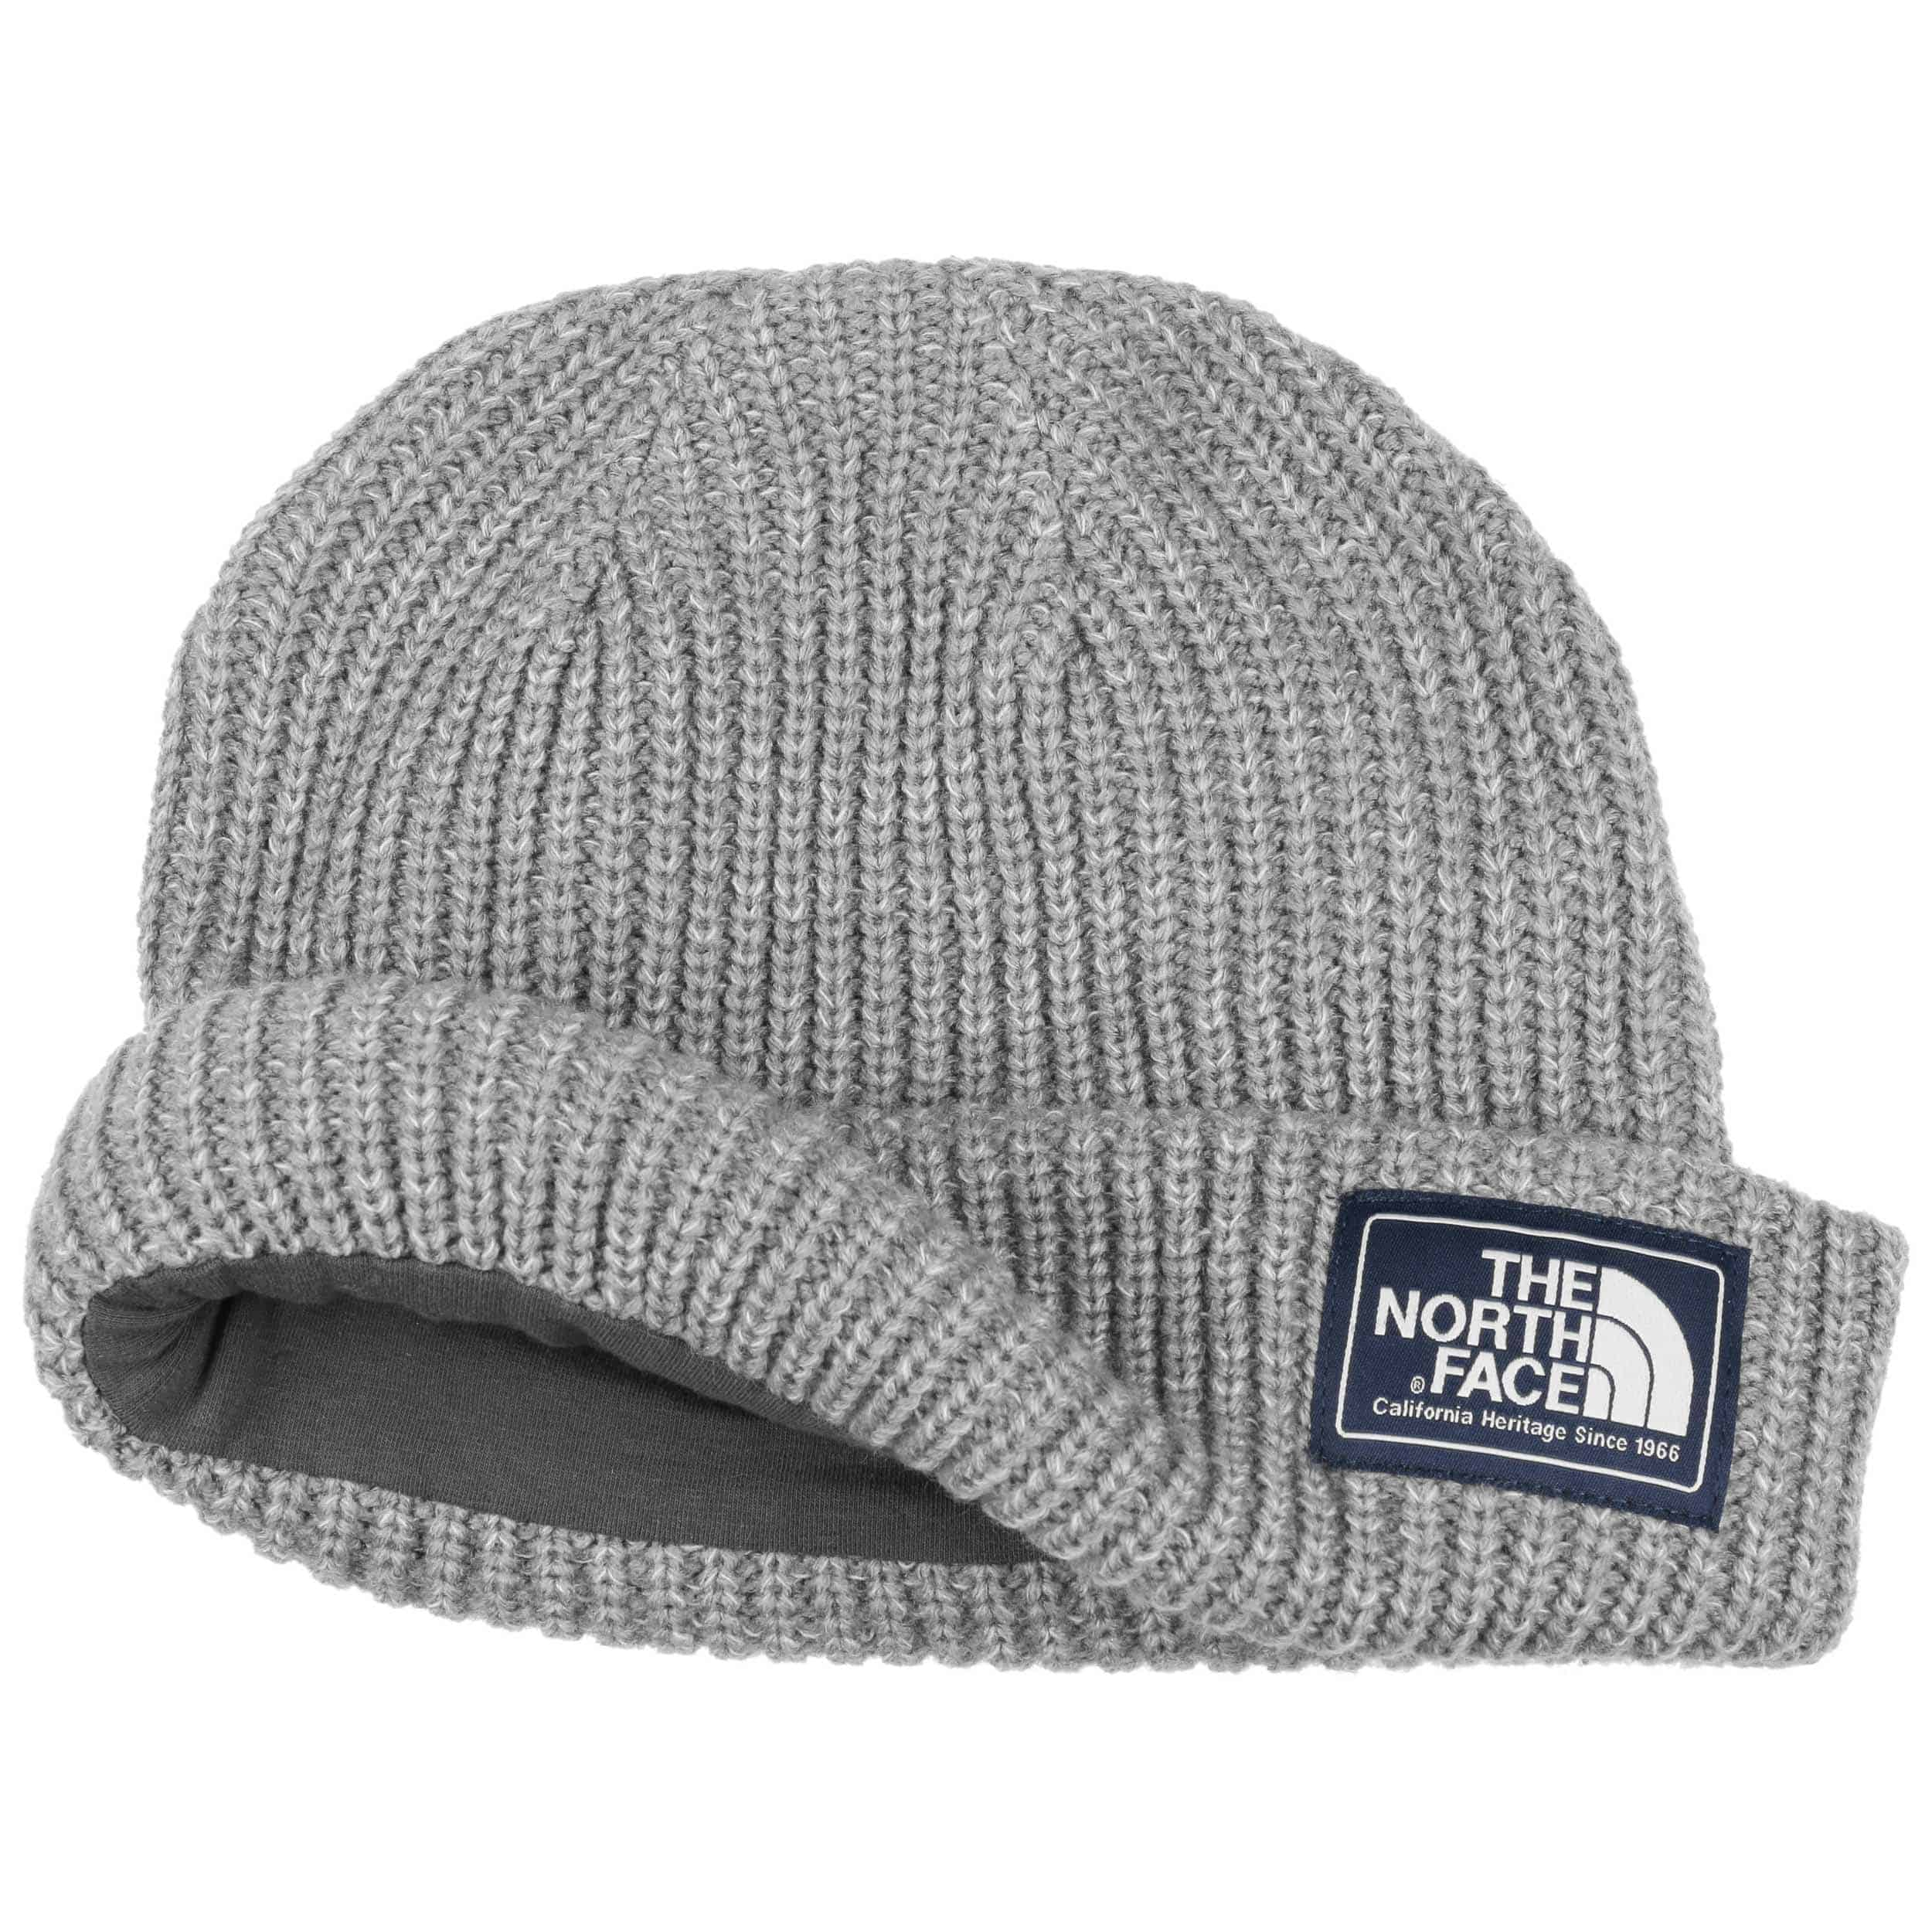 ... Salty Dog Beanie Hat by The North Face - light grey 1 ... 864e18775